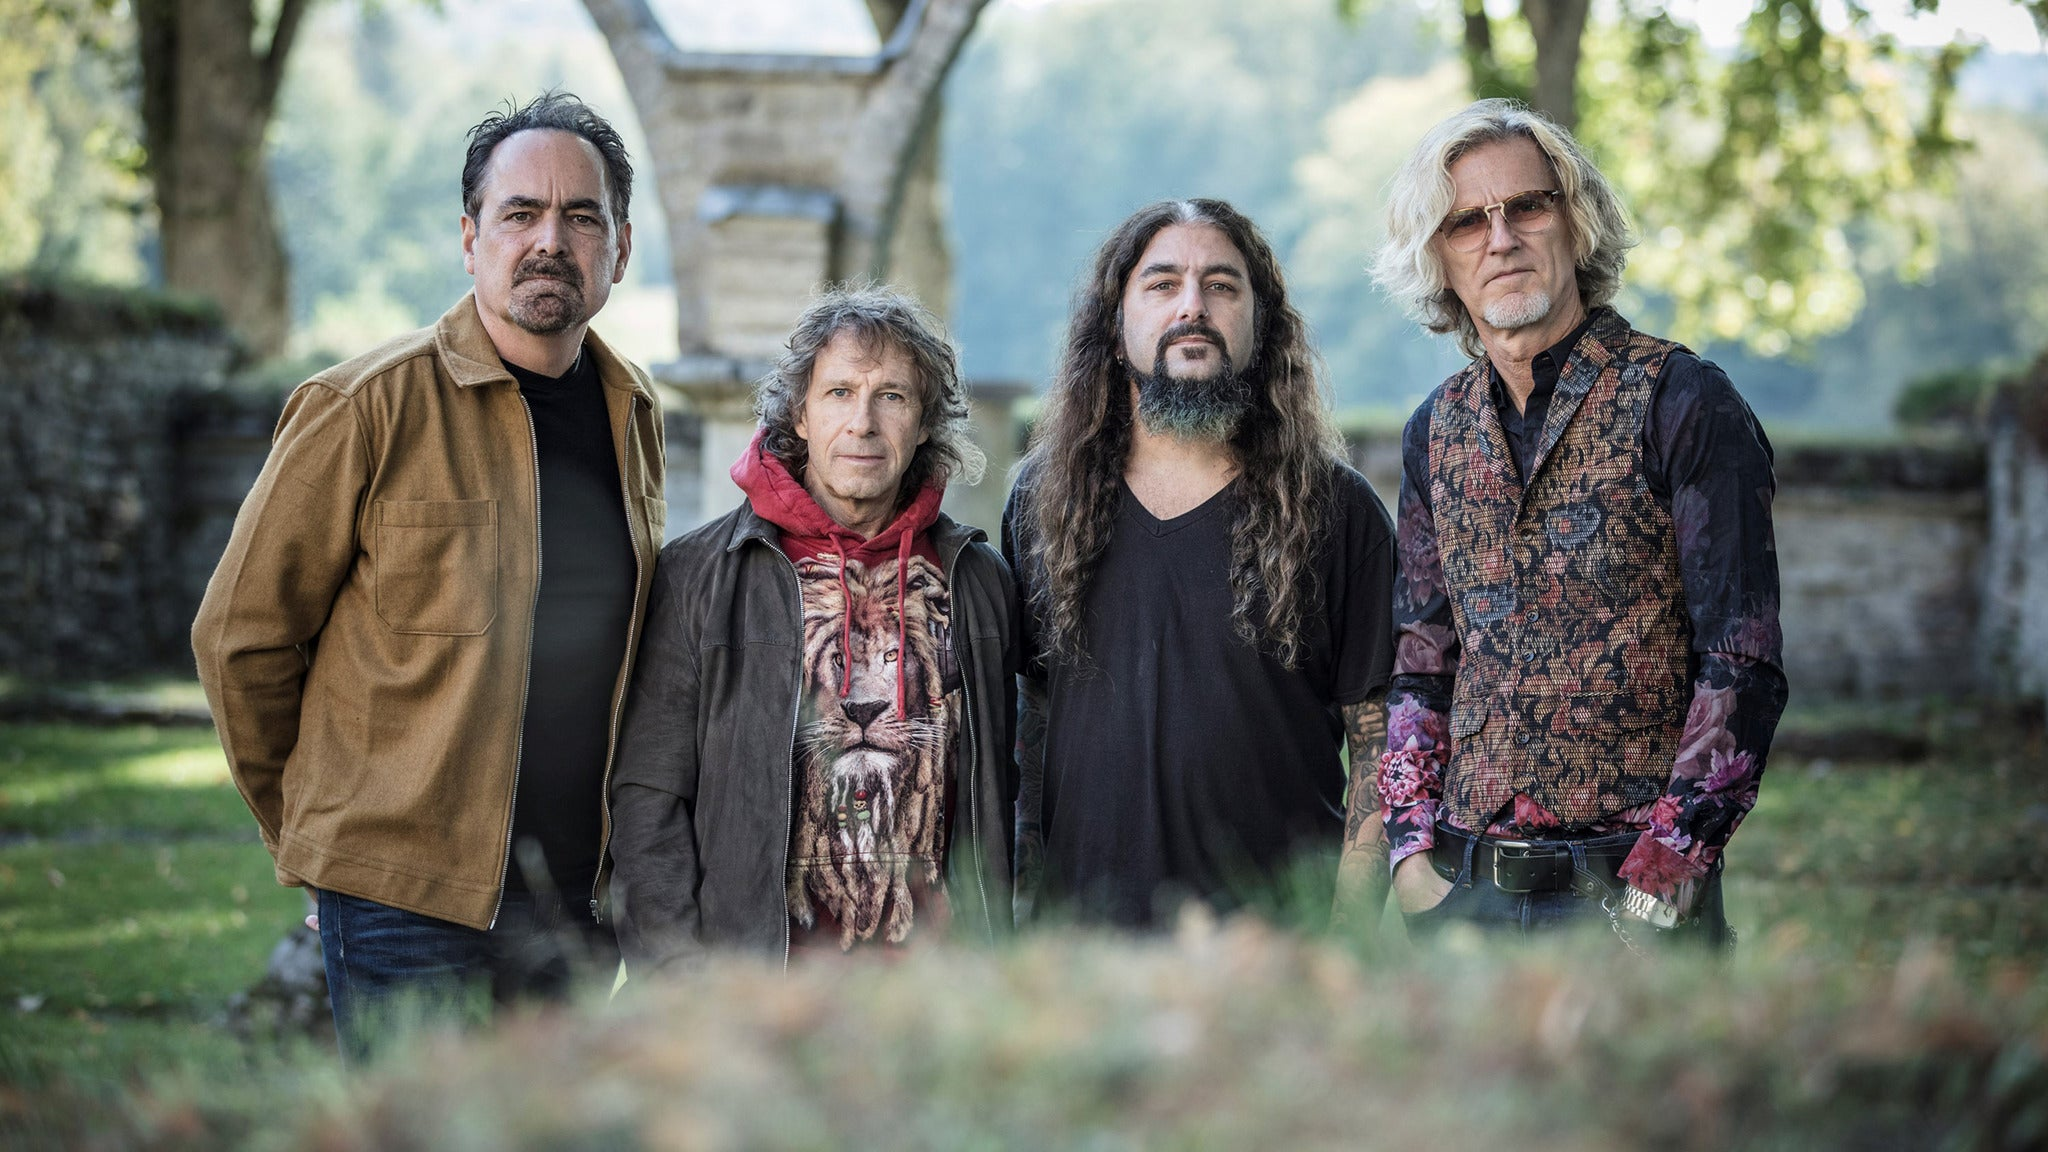 An Evening with Transatlantic at The Wellmont Theater